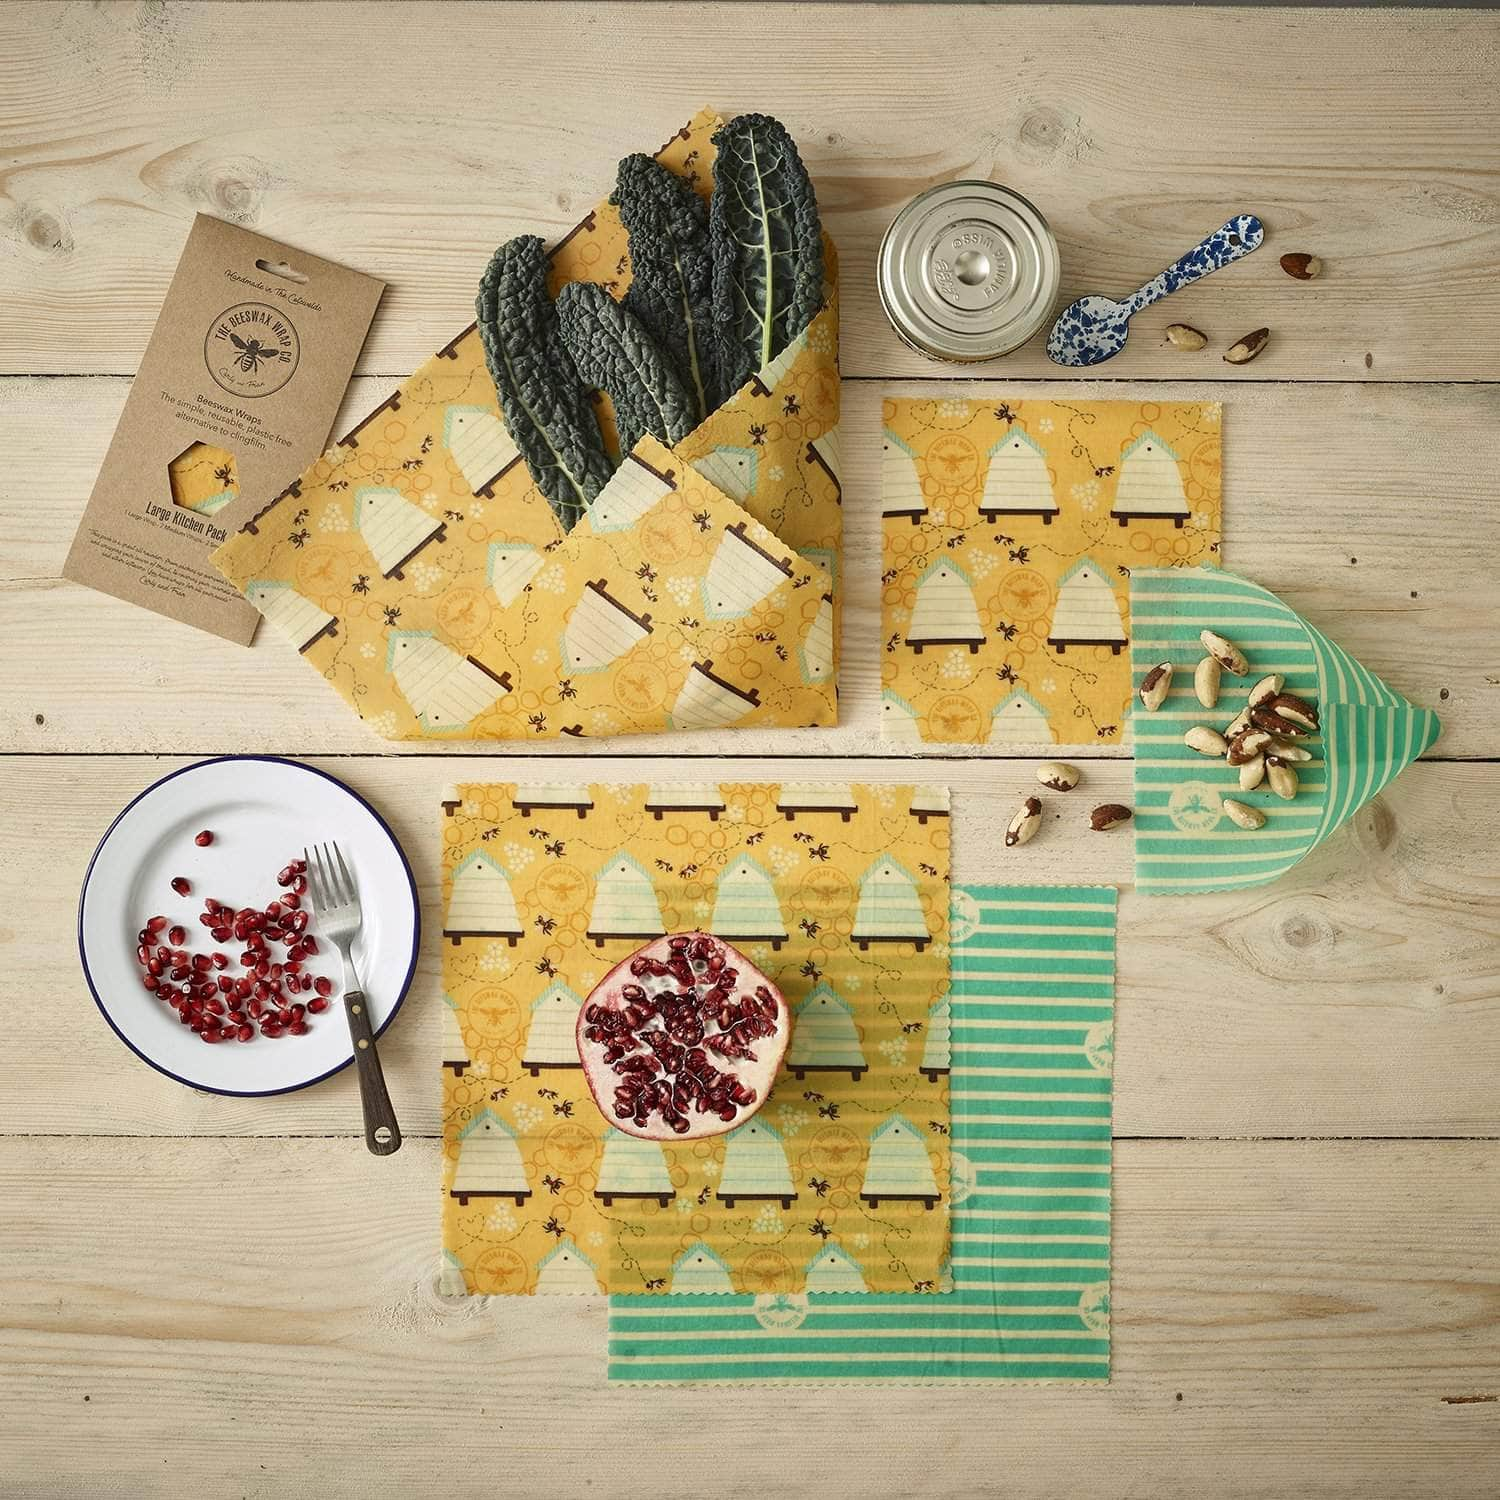 *New* Beeswax wraps - large kitchen pack Beehive